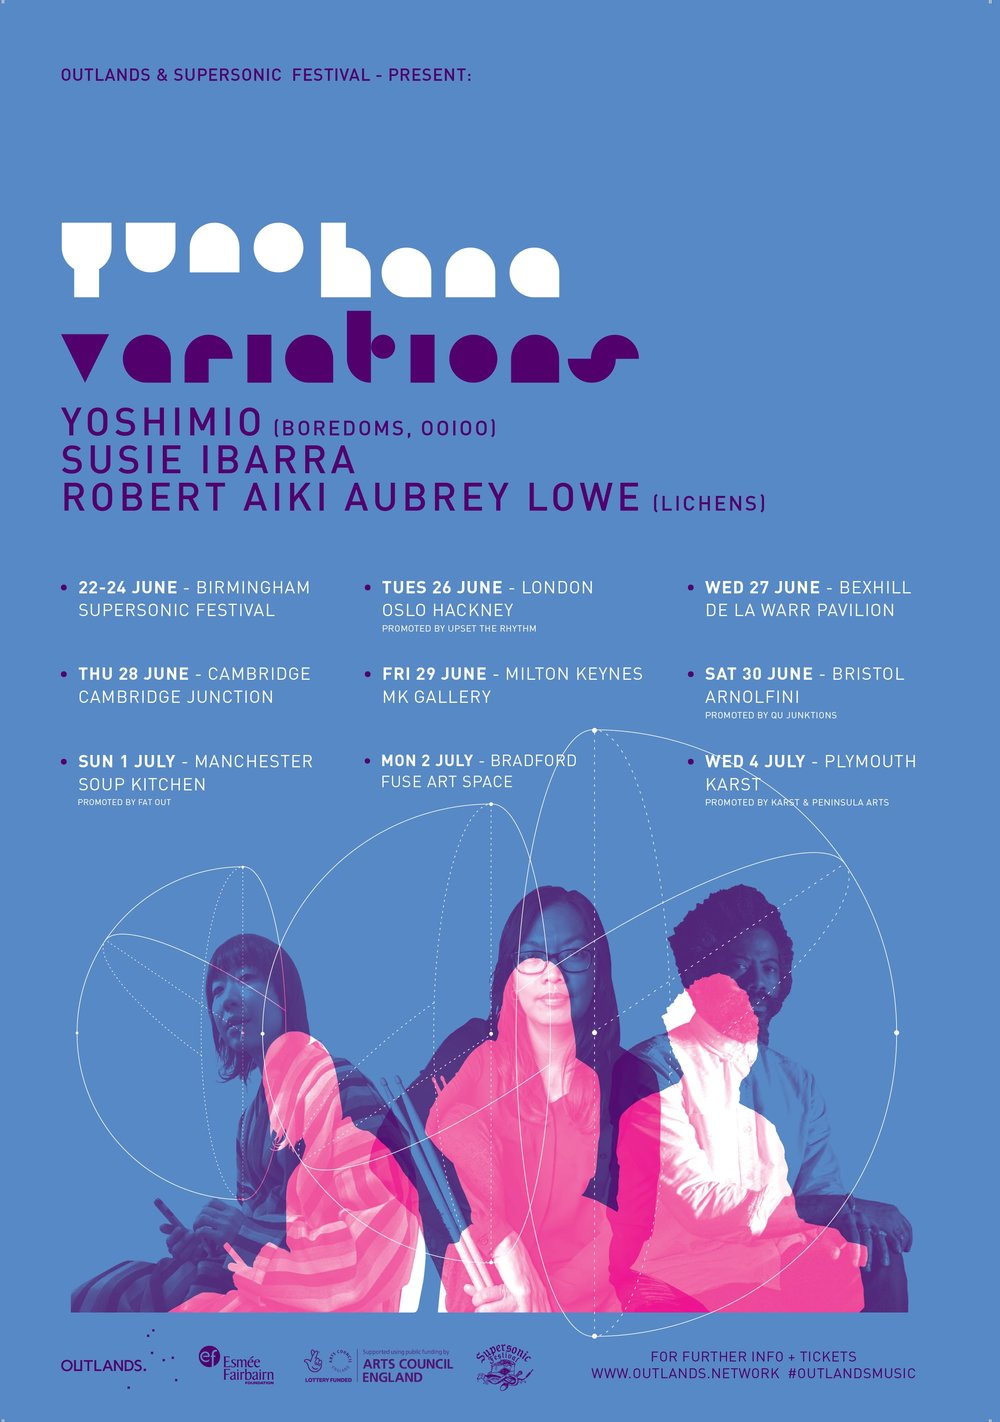 Yunohana Variations tour the UK – Supersonic Festival   22-24 June 2018